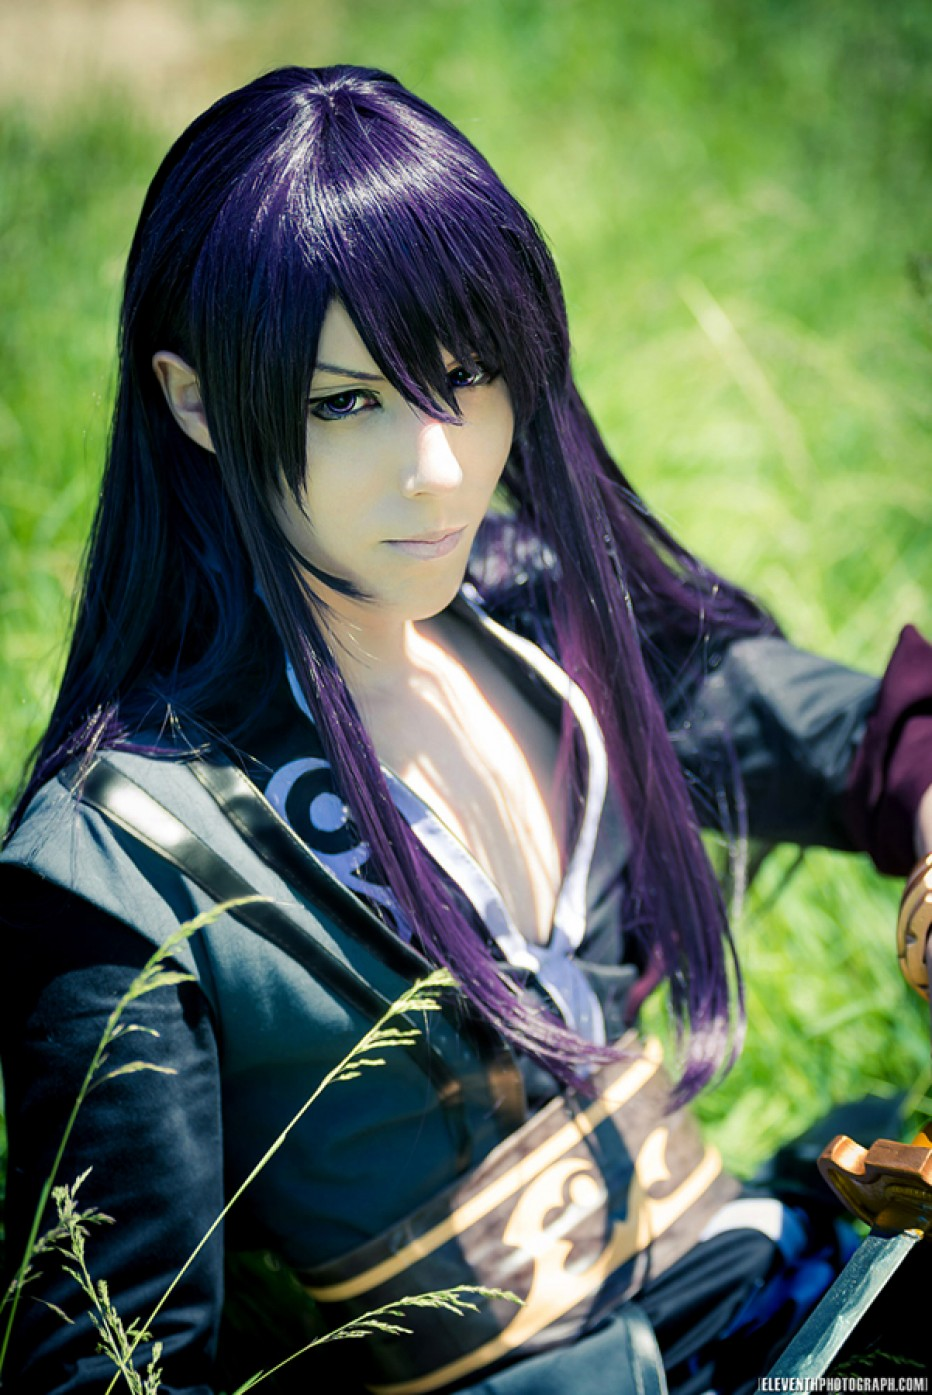 yuri_lowell___tales_of_vesperia_by_narcisspuppet-d71cvfs.jpg